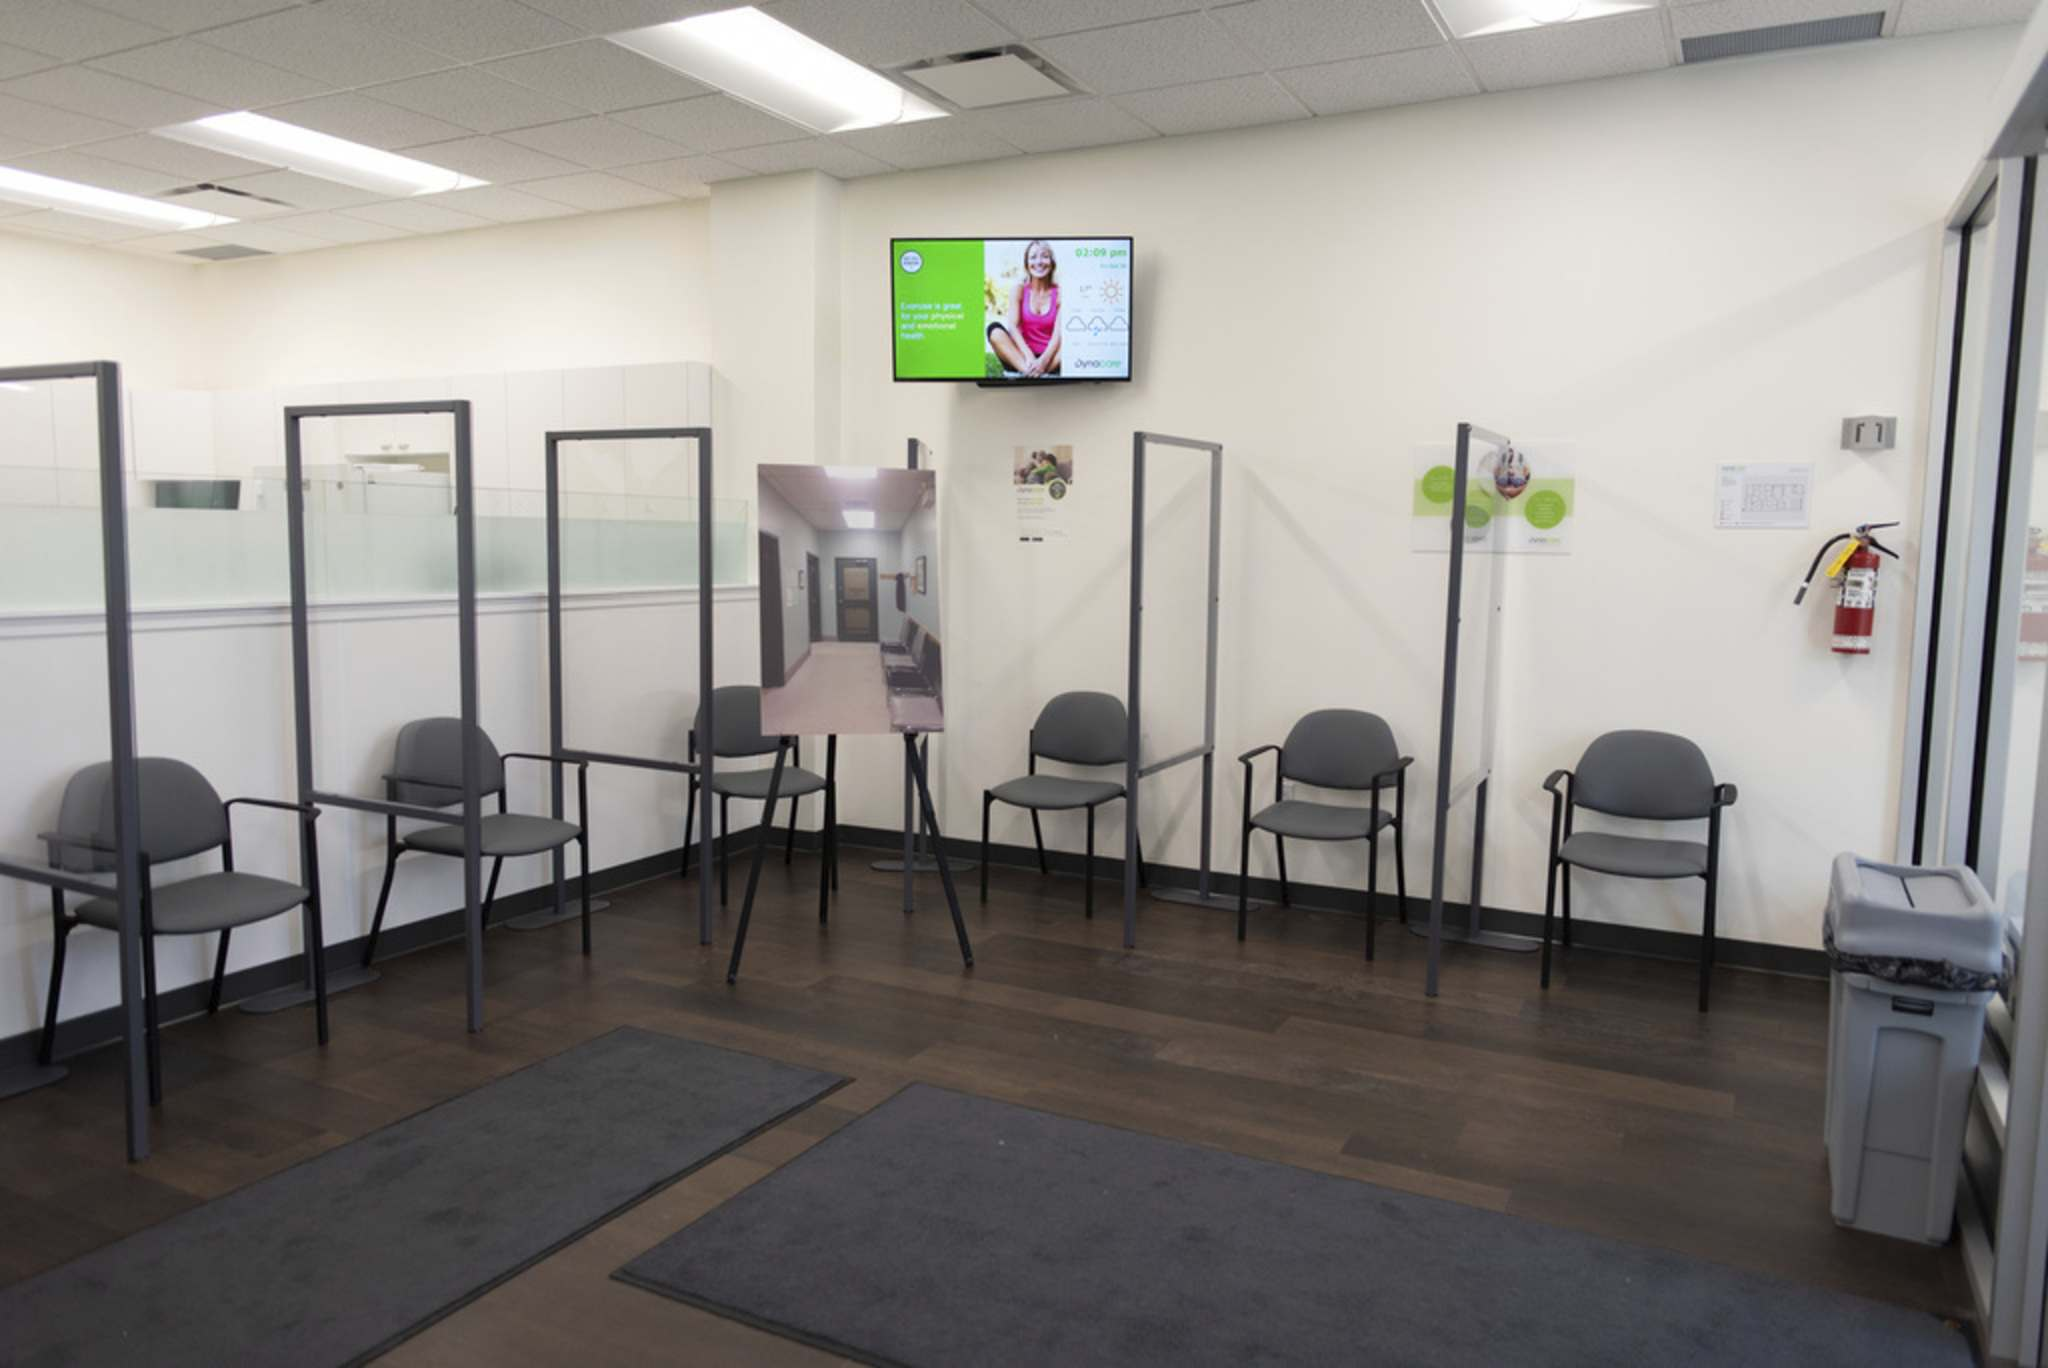 JESSE BOILY / WINNIPEG FREE PRESS</p><p>The waiting room at Dynacare's new location at 3-1581 Regent Avenue with plexiglass barriers between chairs for physical distancing.</p>